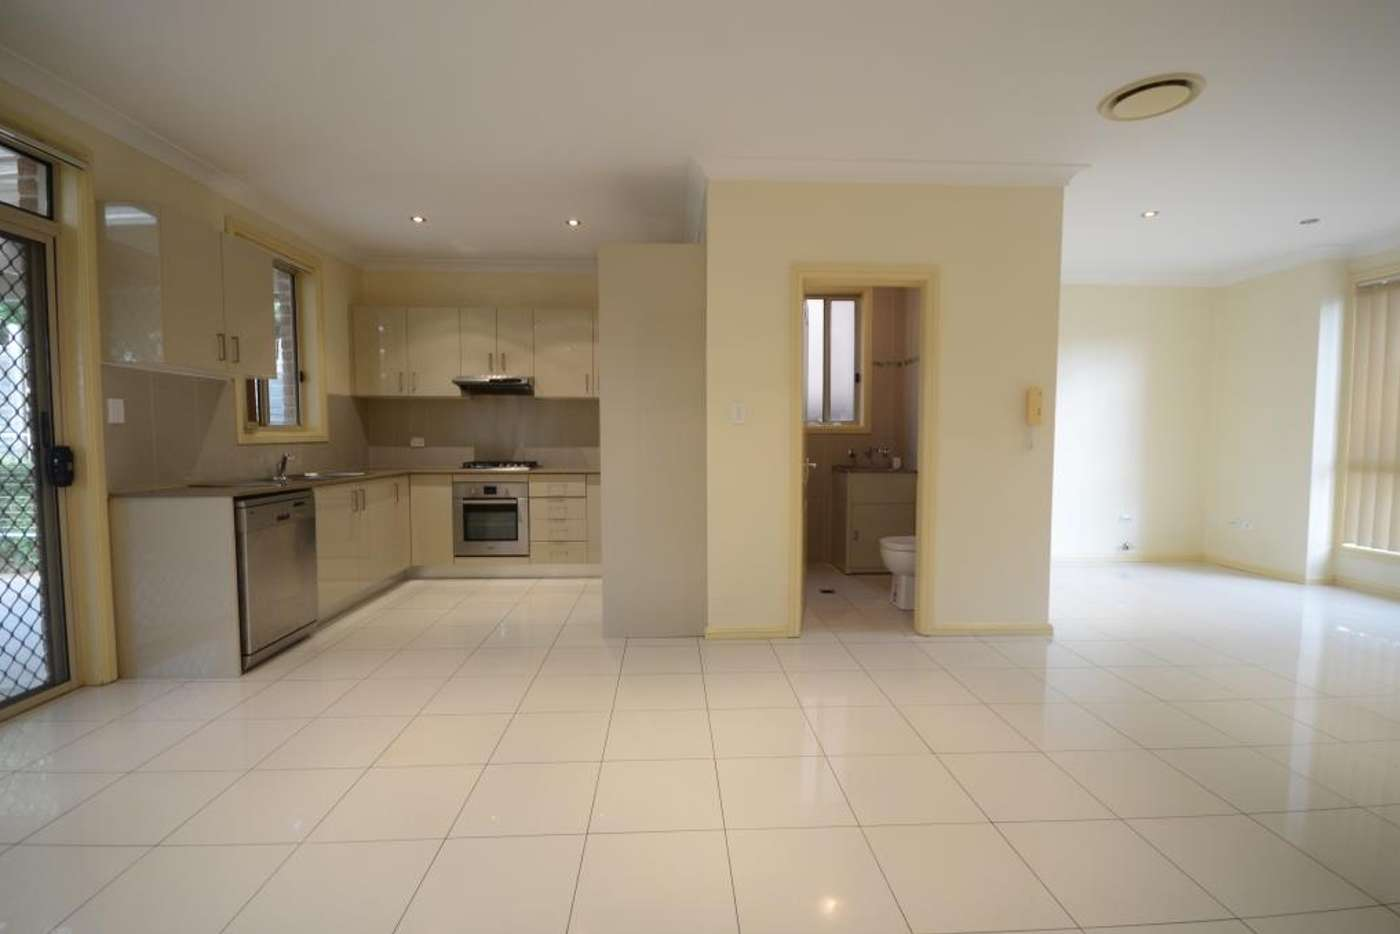 Seventh view of Homely townhouse listing, 11/19 Mount Street, Constitution Hill NSW 2145